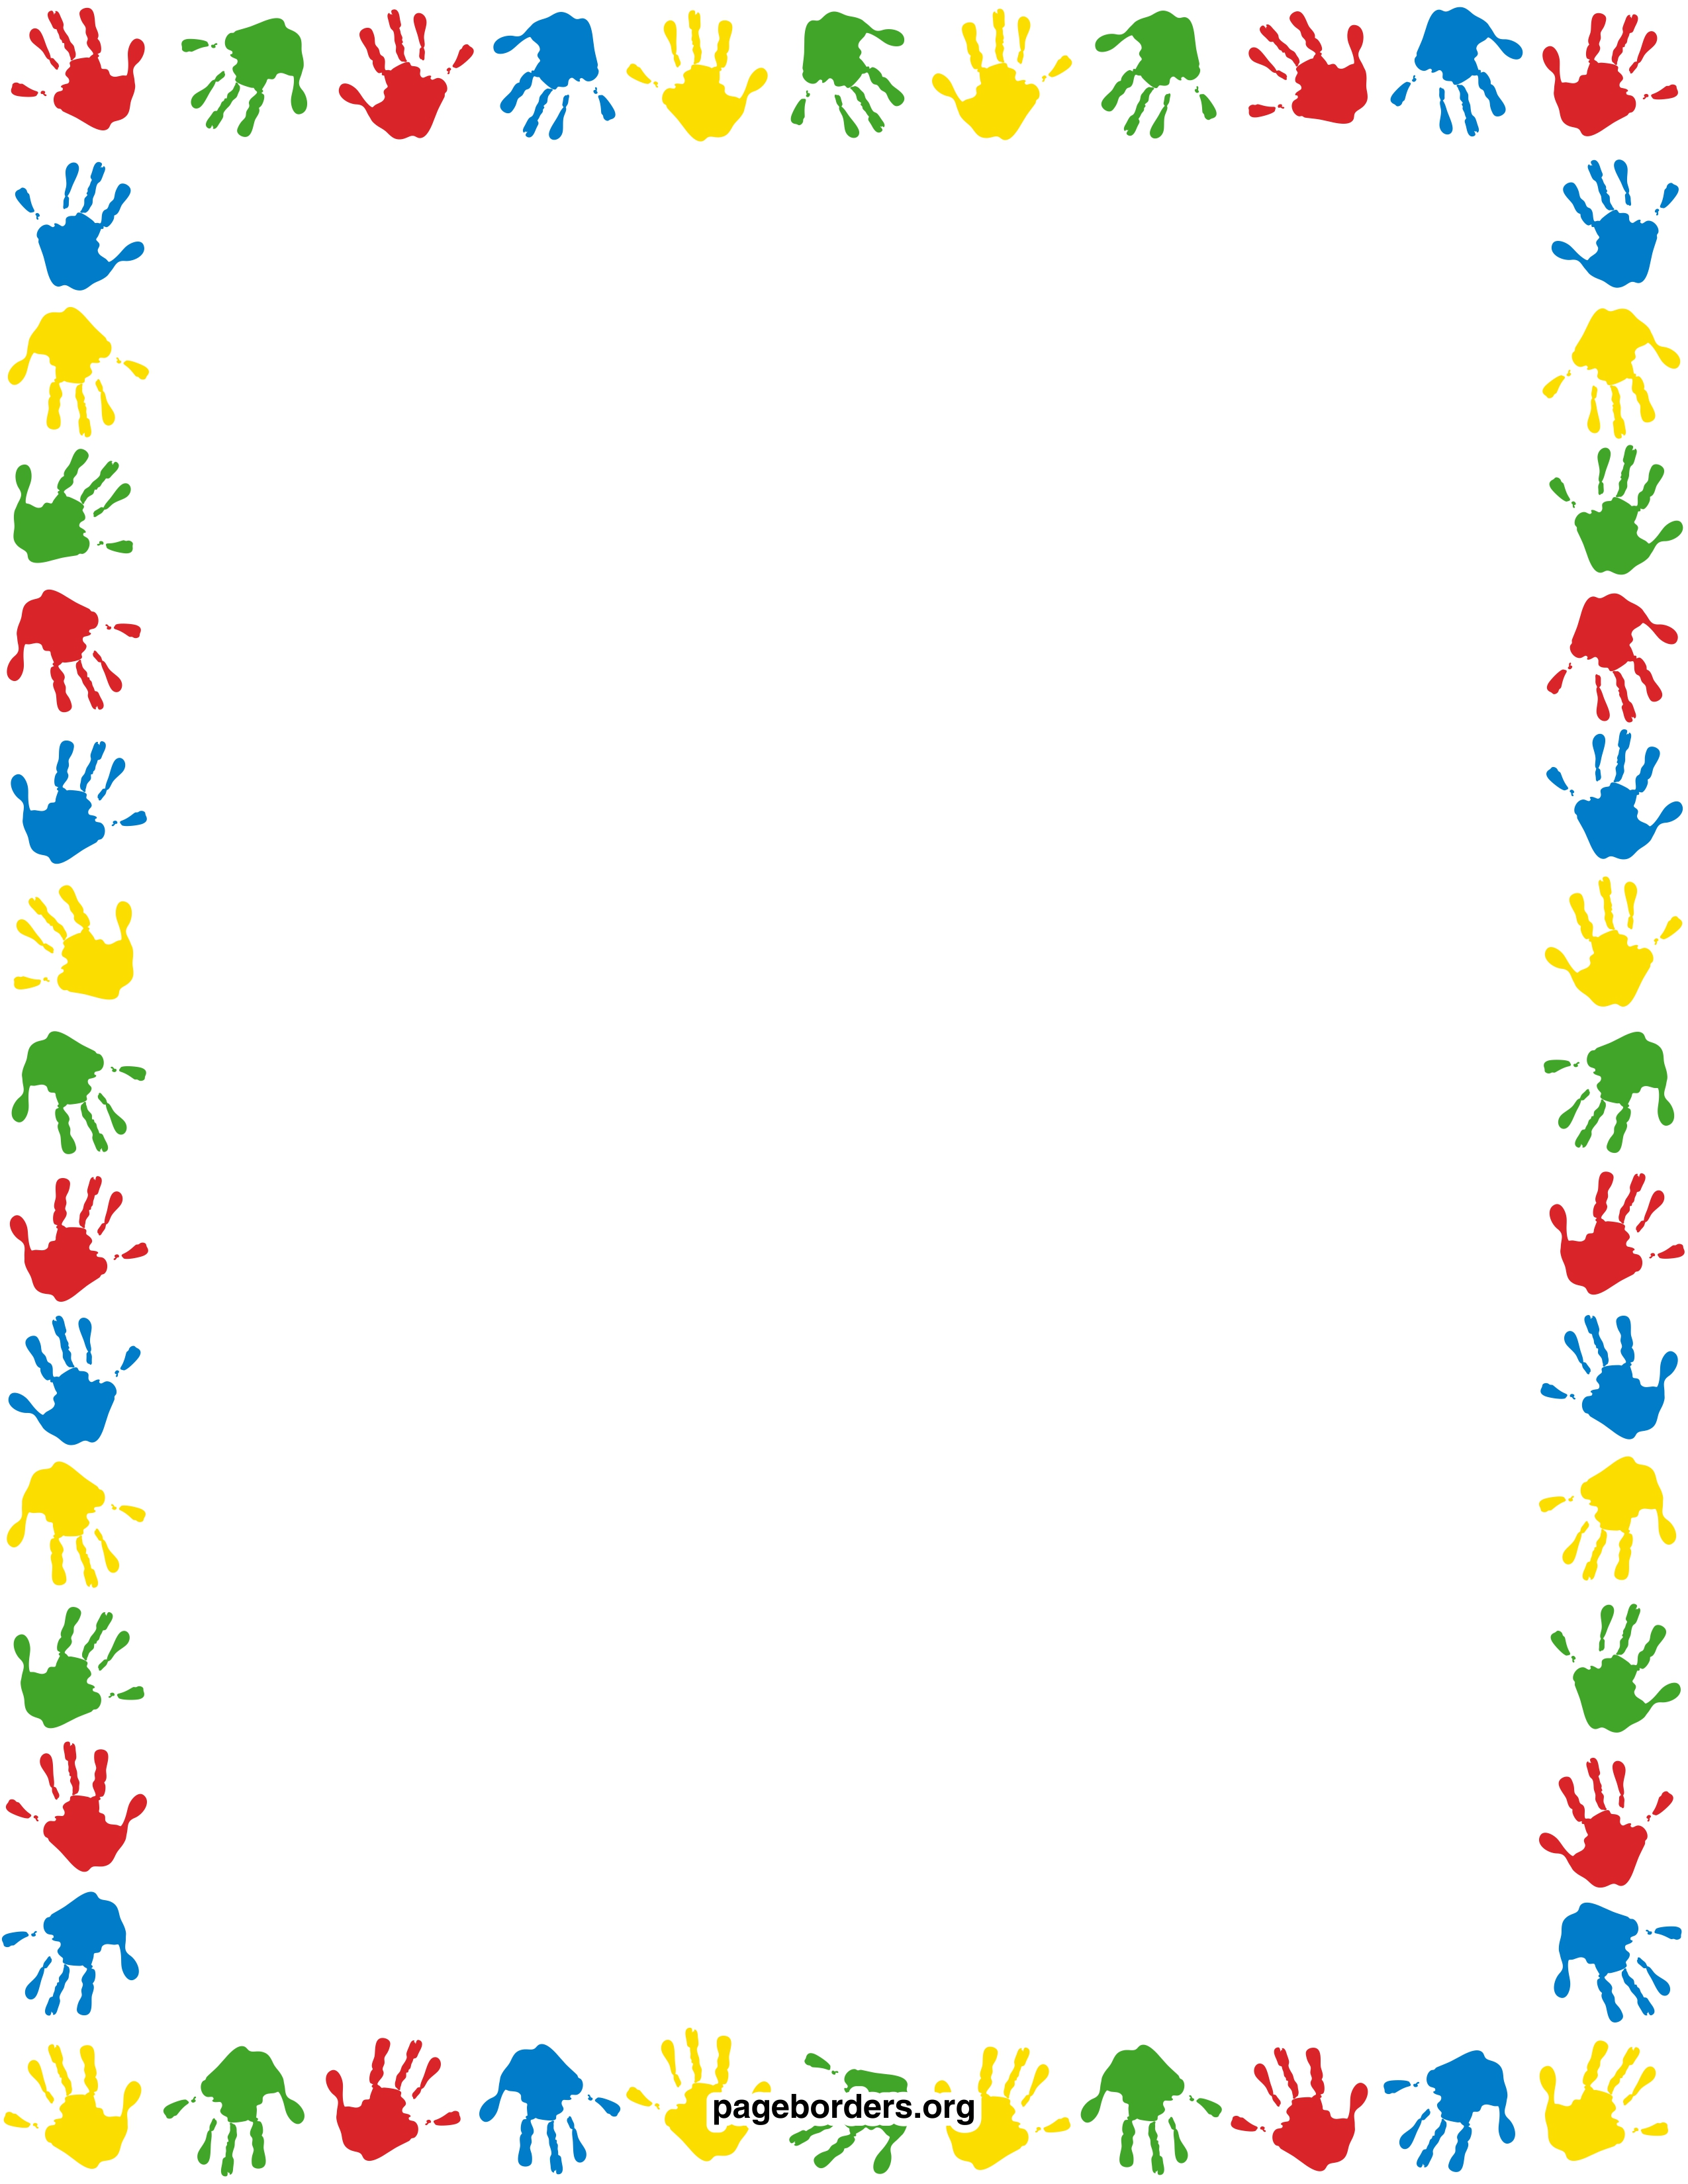 Kids Borders Clipart 20 Free Cliparts